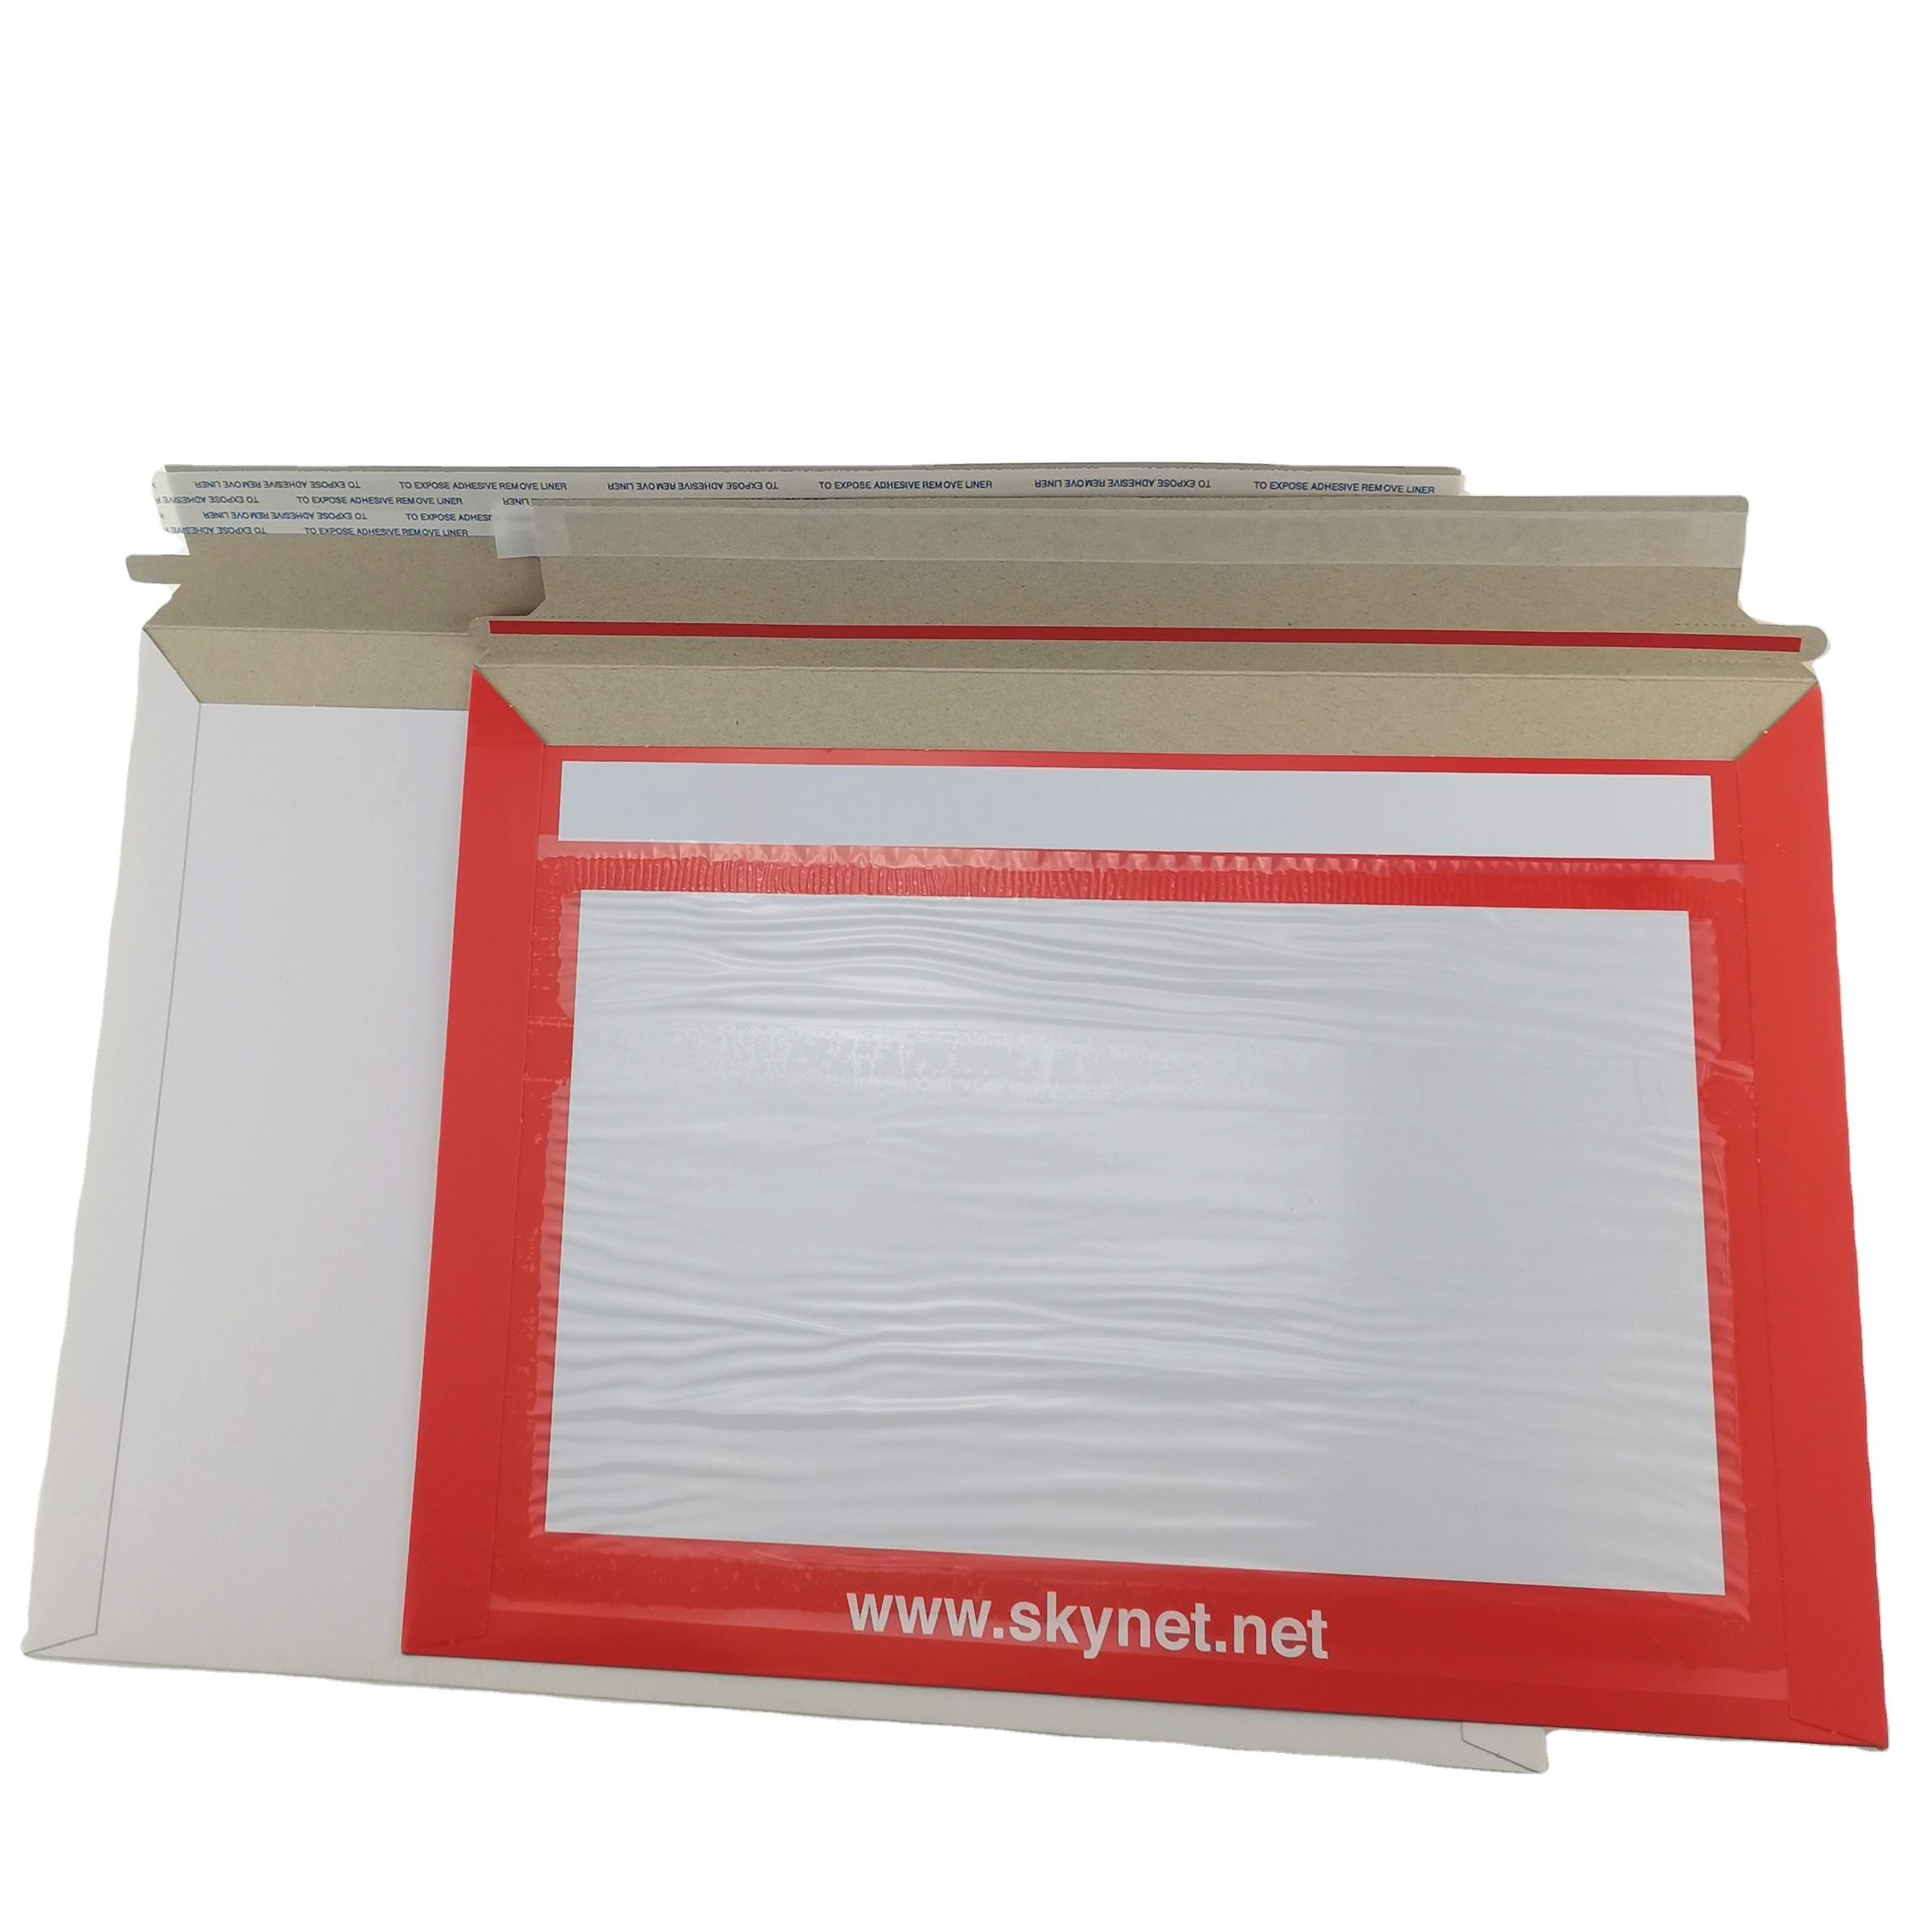 Hard Self Adhesive Peel&Seal Cardboard Postal Envelopes With Custom Printing